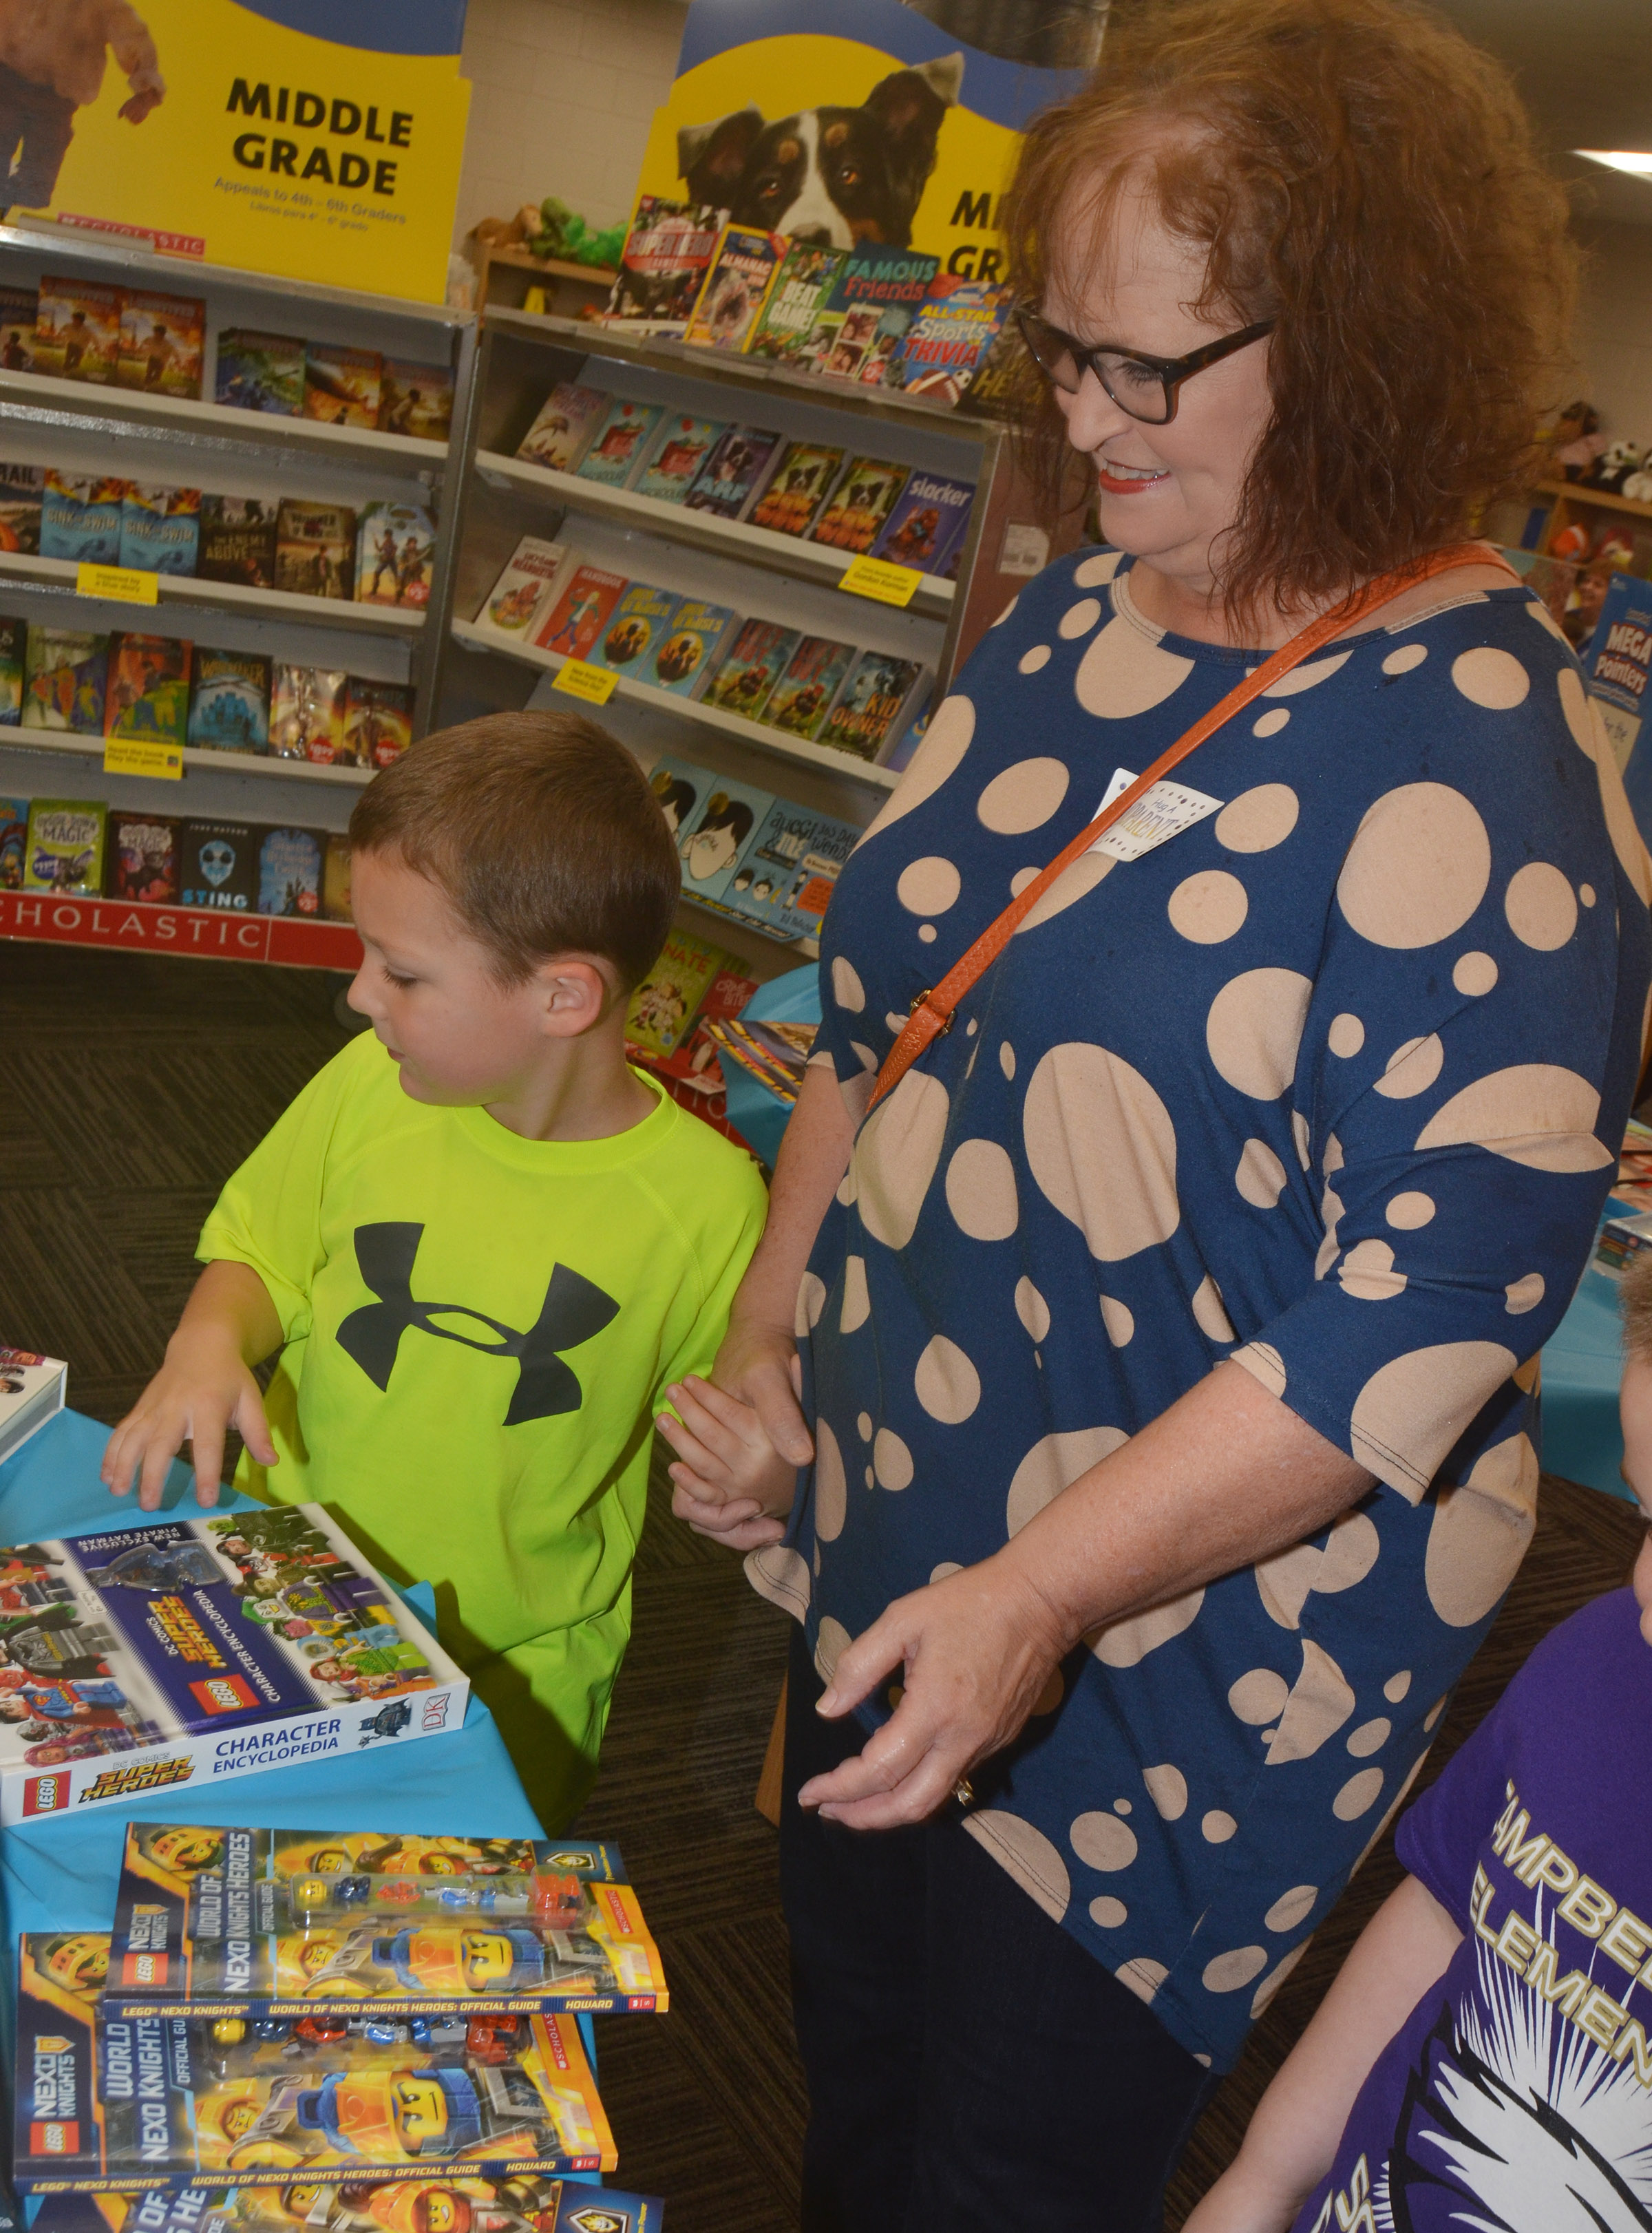 CES kindergartener Kyler Wilson looks at books with his grandmother.